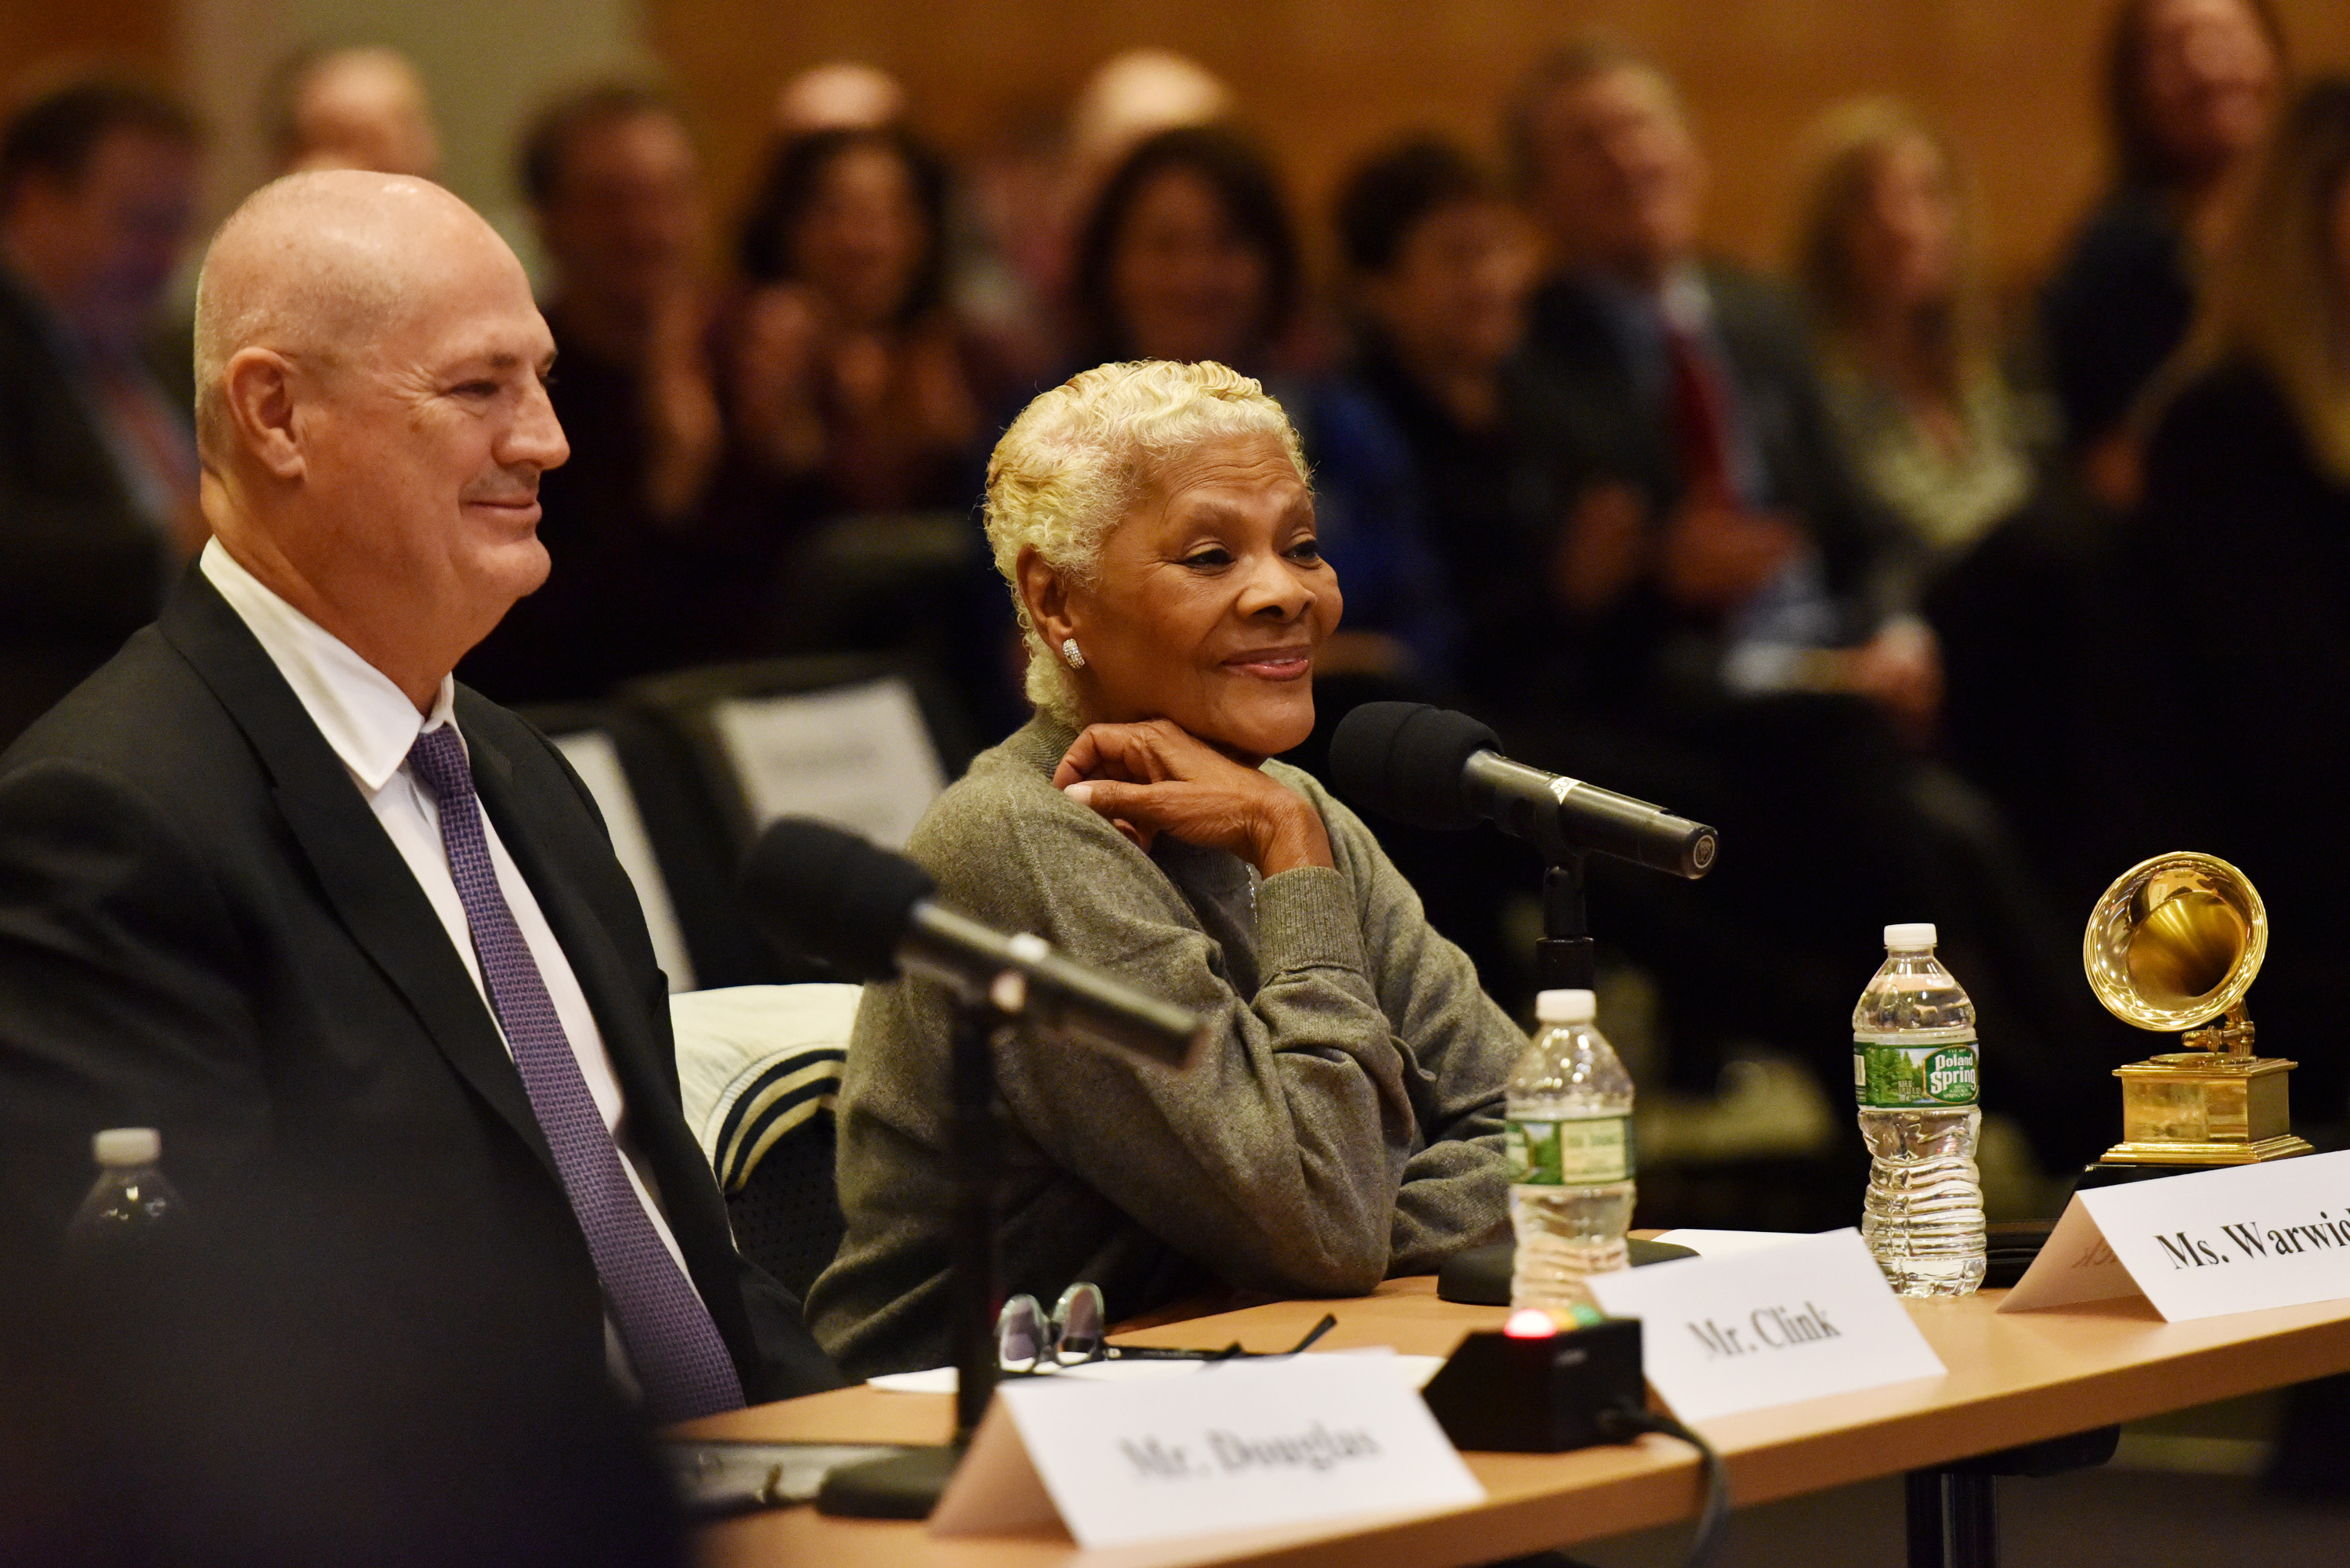 Mike Clink and Dionne Warwick testify at the House Judiciary Committee Field Hearing